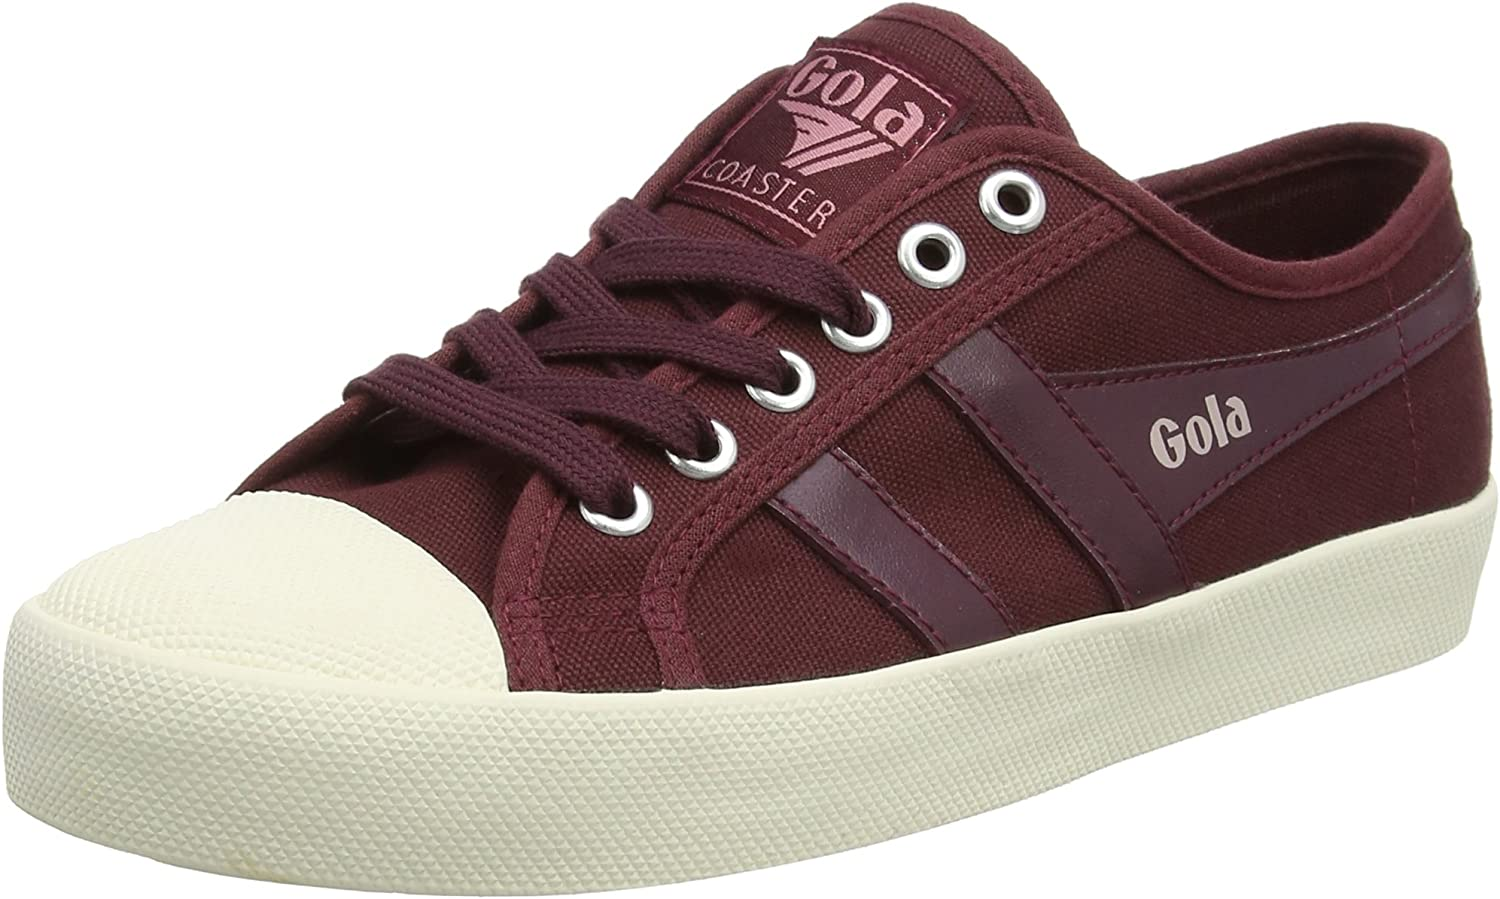 Gola Women's Coaster Trainers Pink